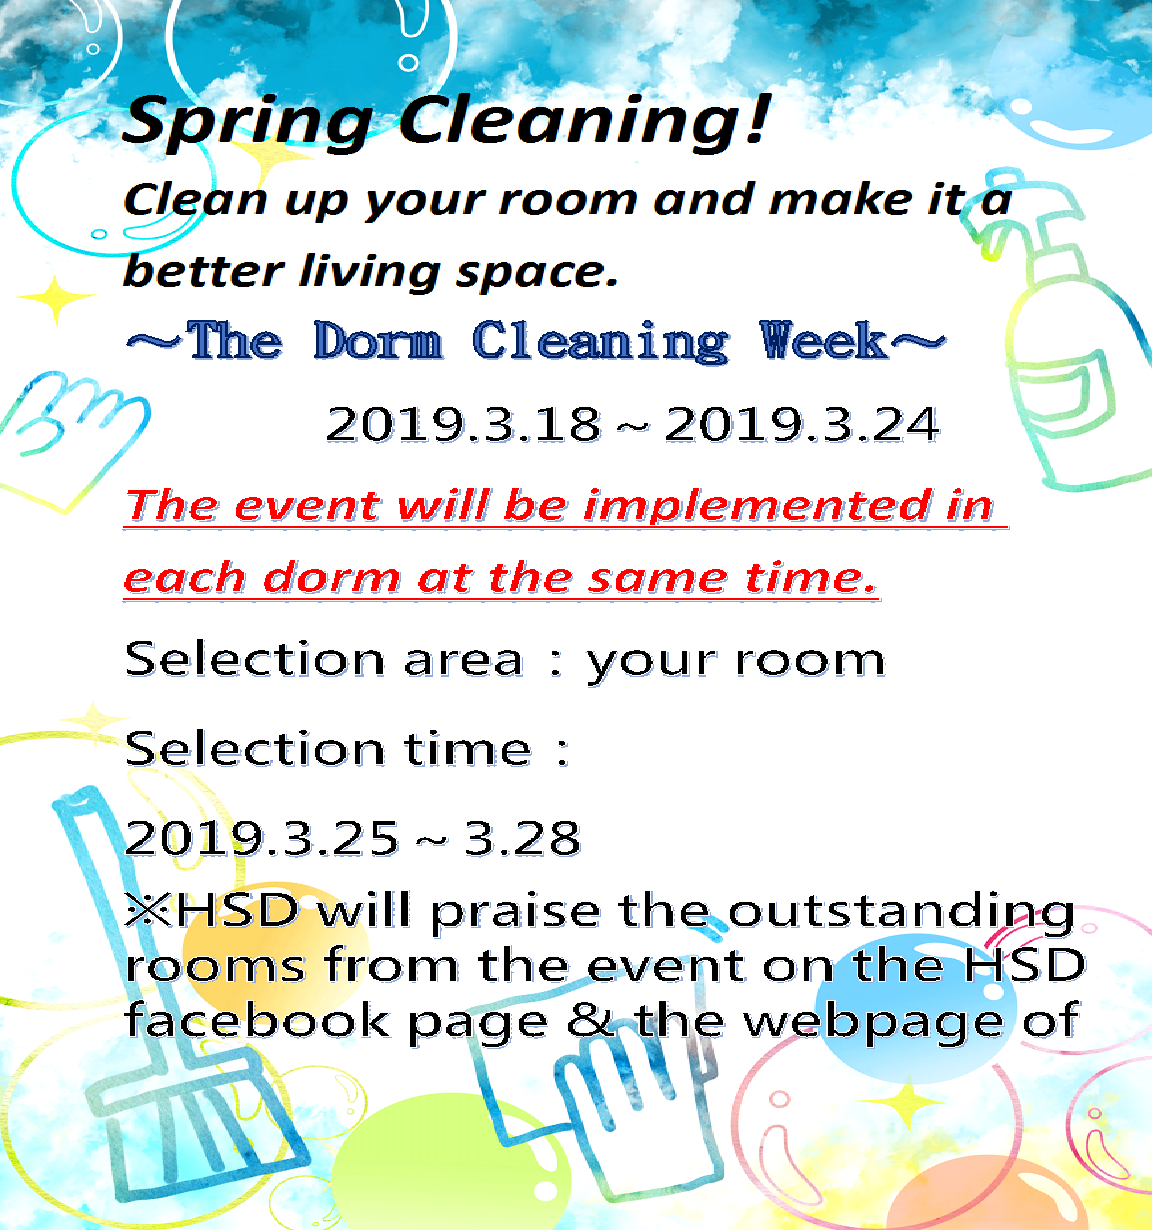 The Dorm Cleaning Week